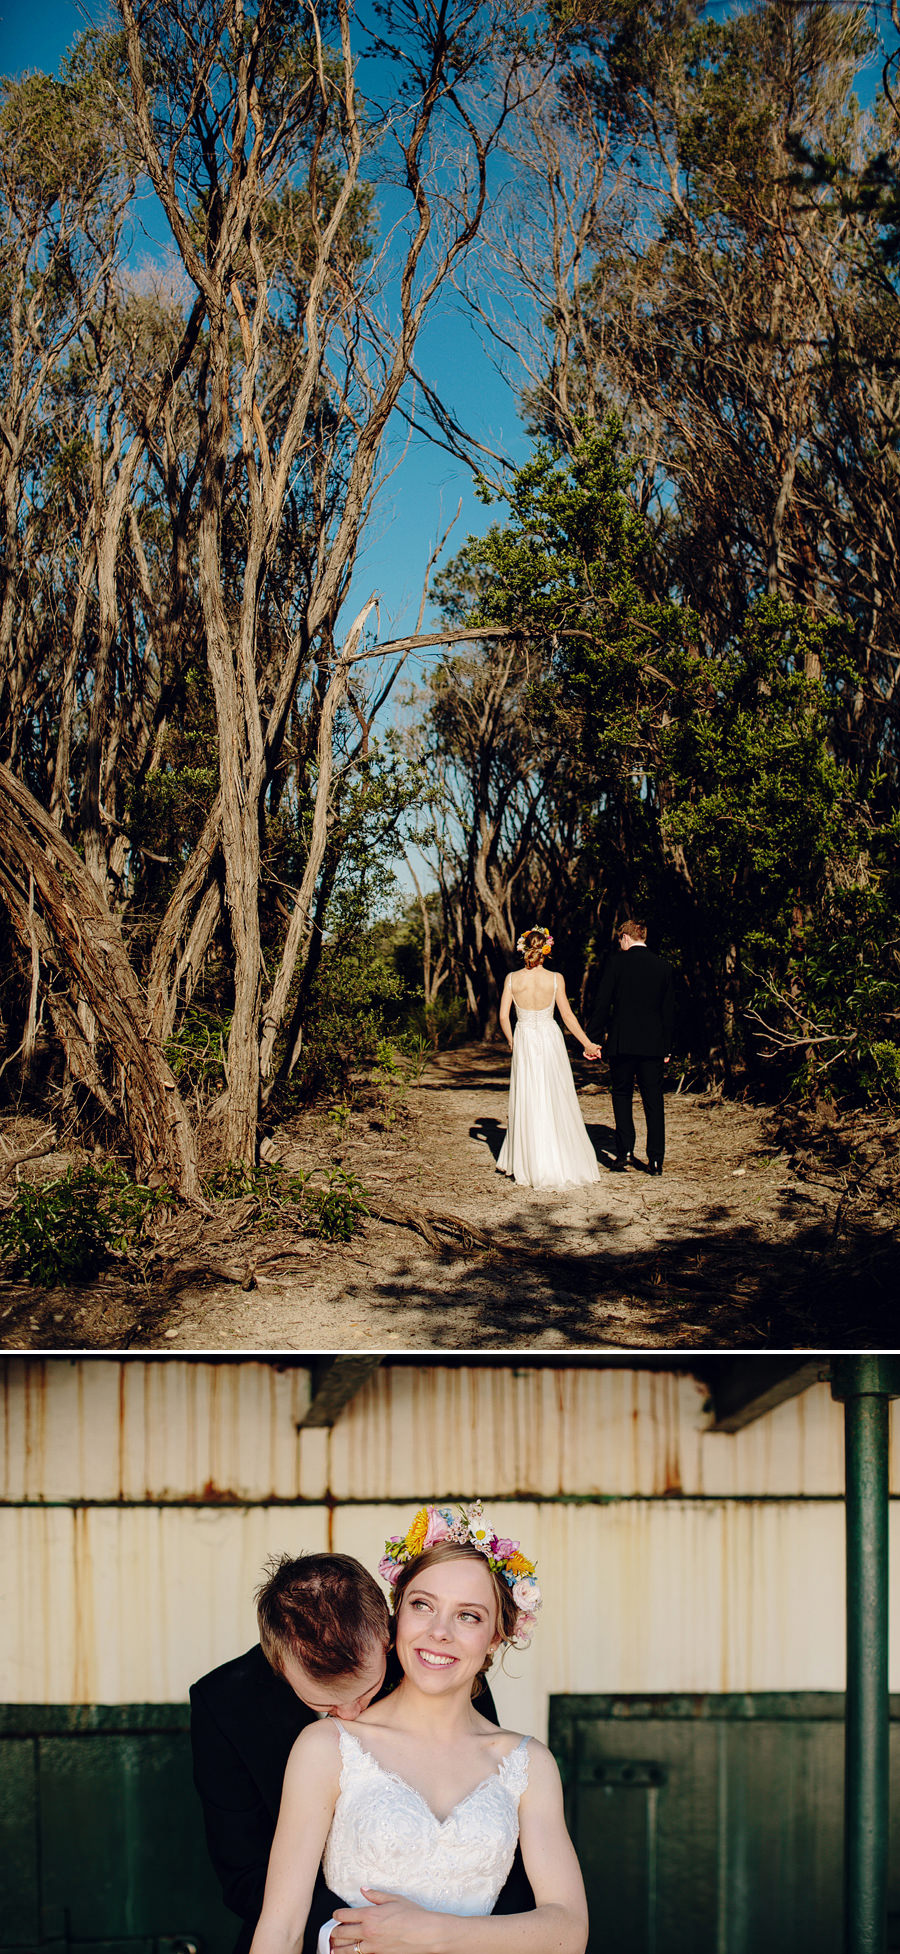 North Head Wedding Photographers: Bridal Party Portraits